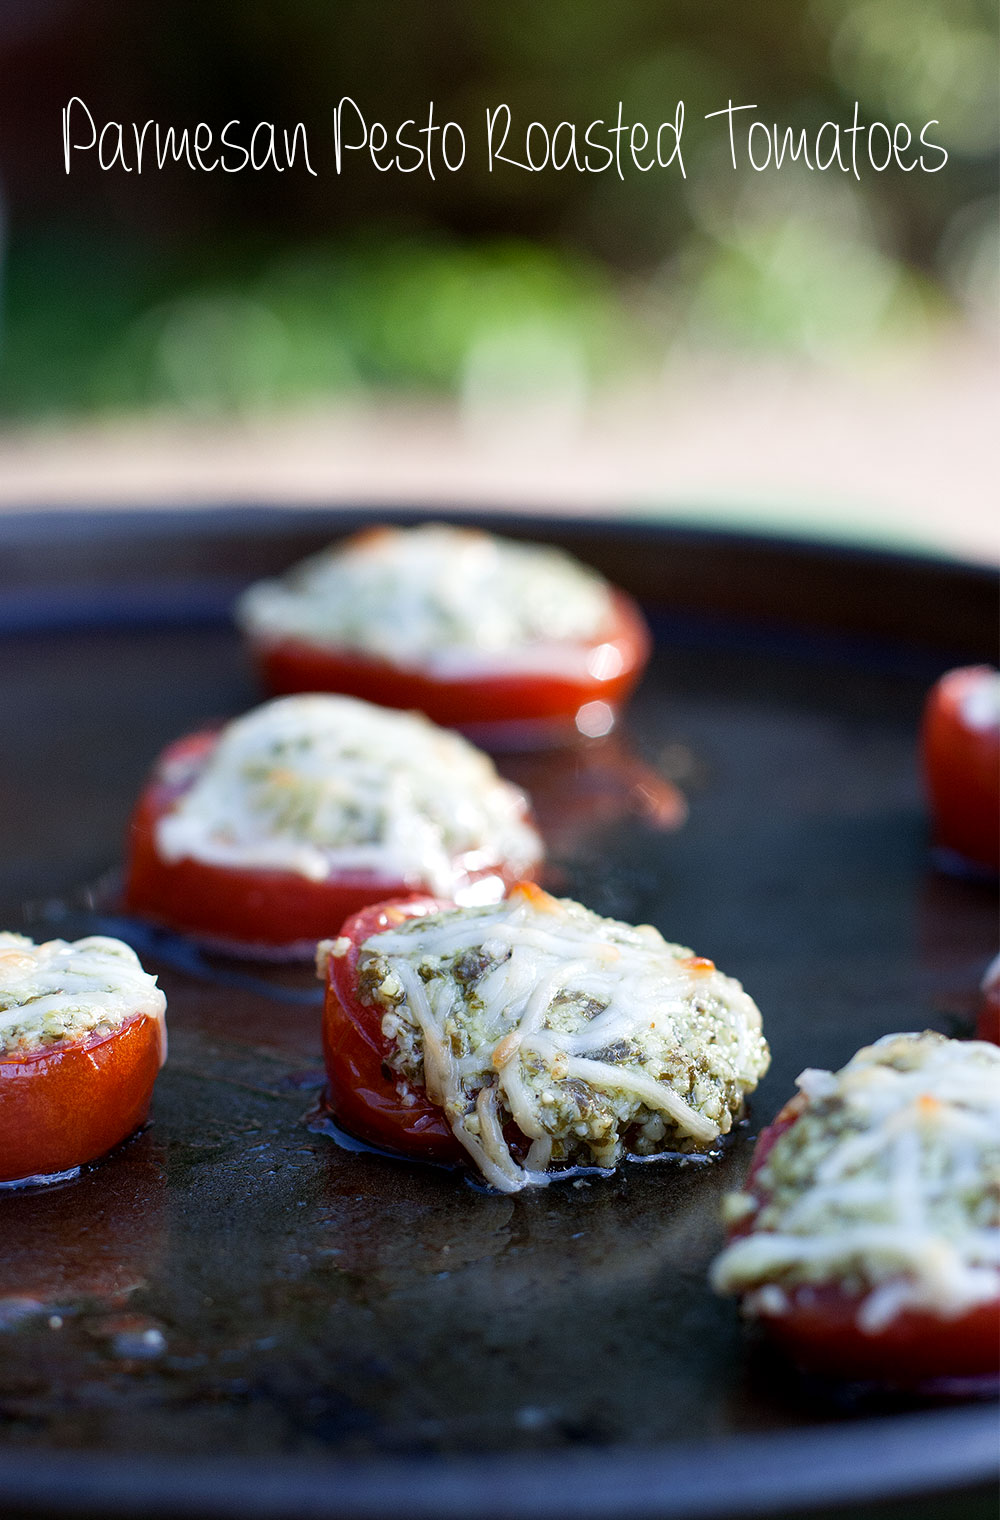 Parmesan-Pesto-Roasted-Tomatoes-01